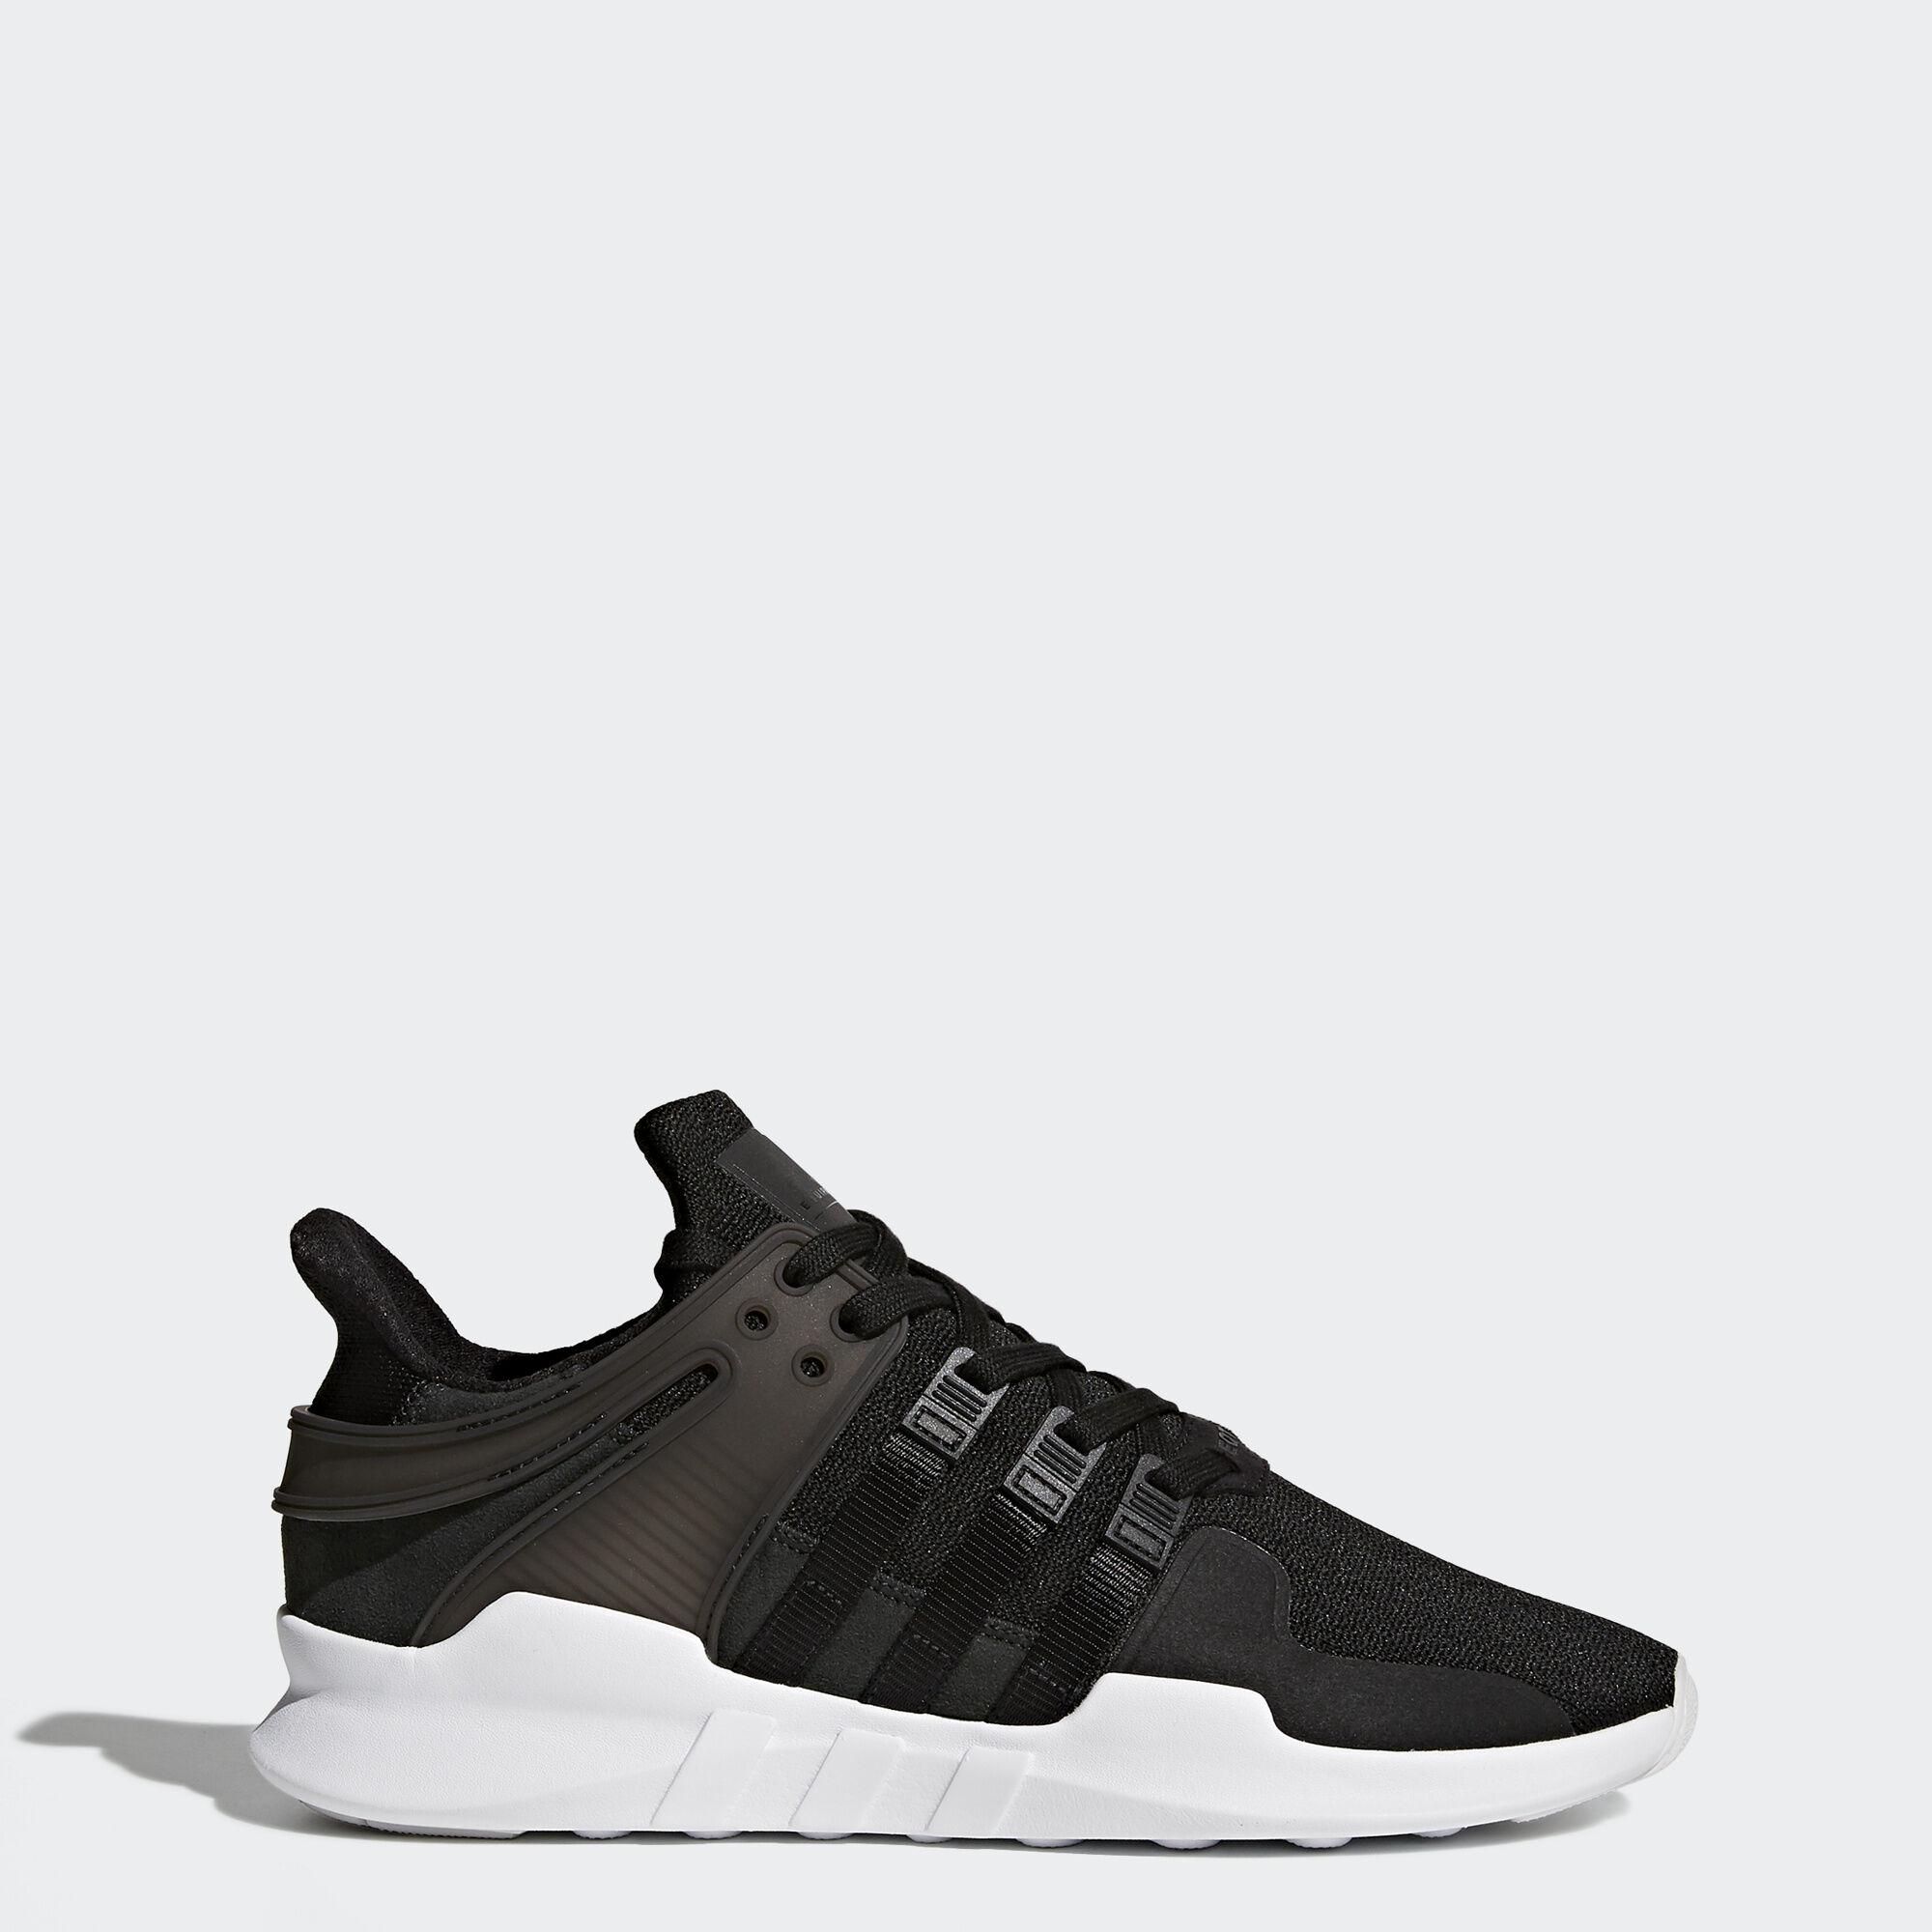 Adidas Eqt Support Adv Big Kids CP9783 White Athletic Shoes